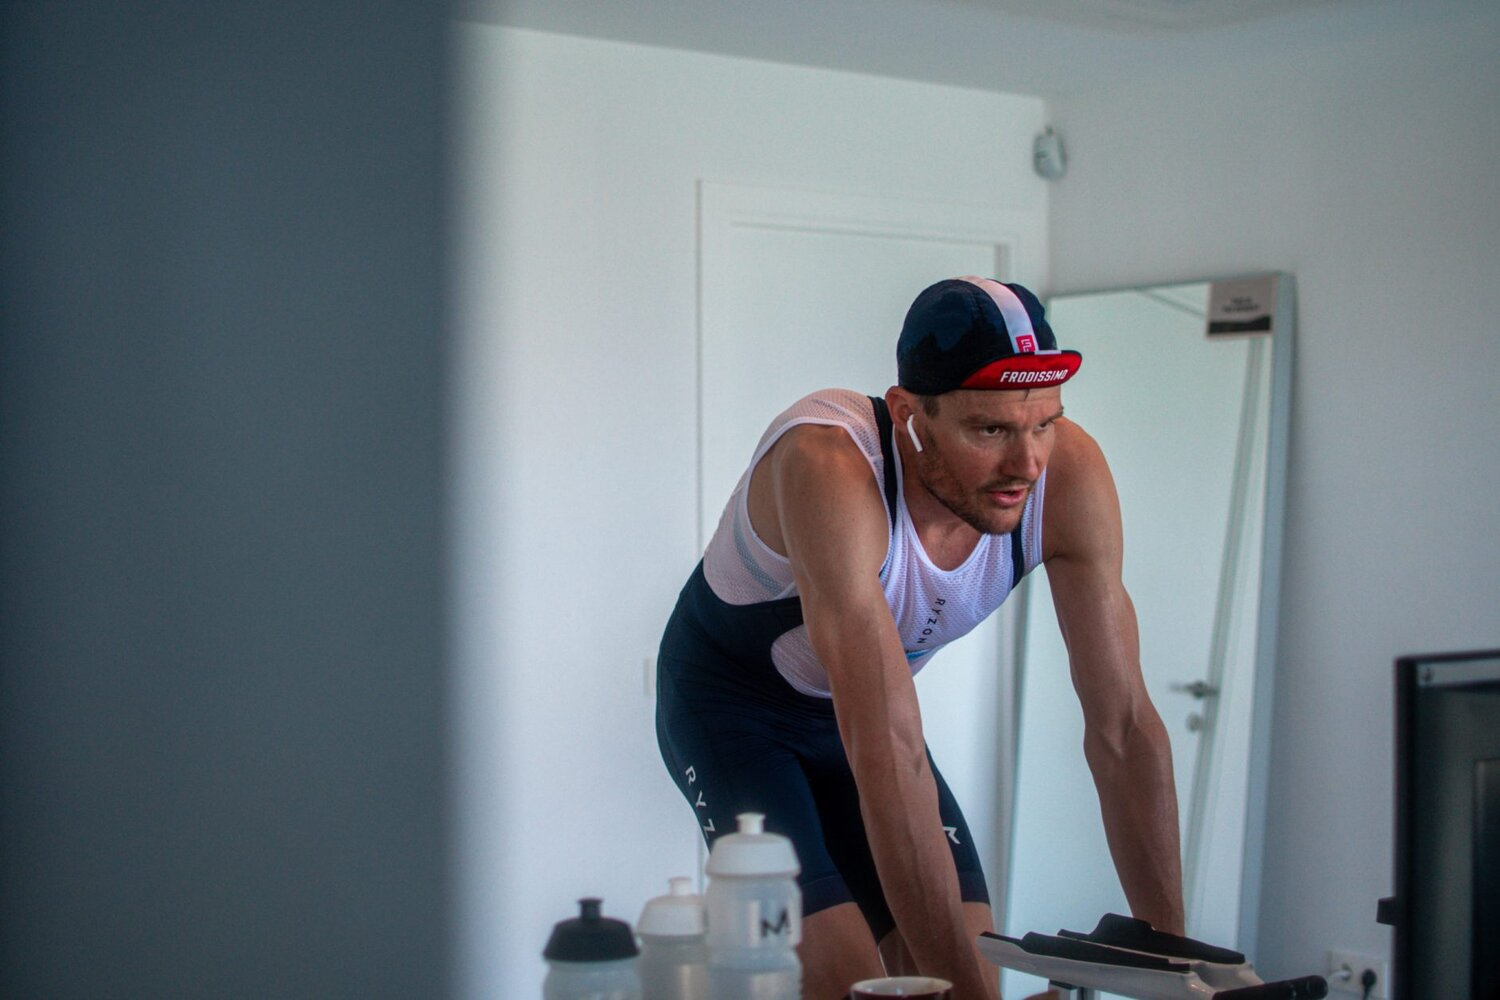 03_breitling-triathlon-squad-member-jan-frodeno-cycling-during-his-tri-at-home-scaled.jpg